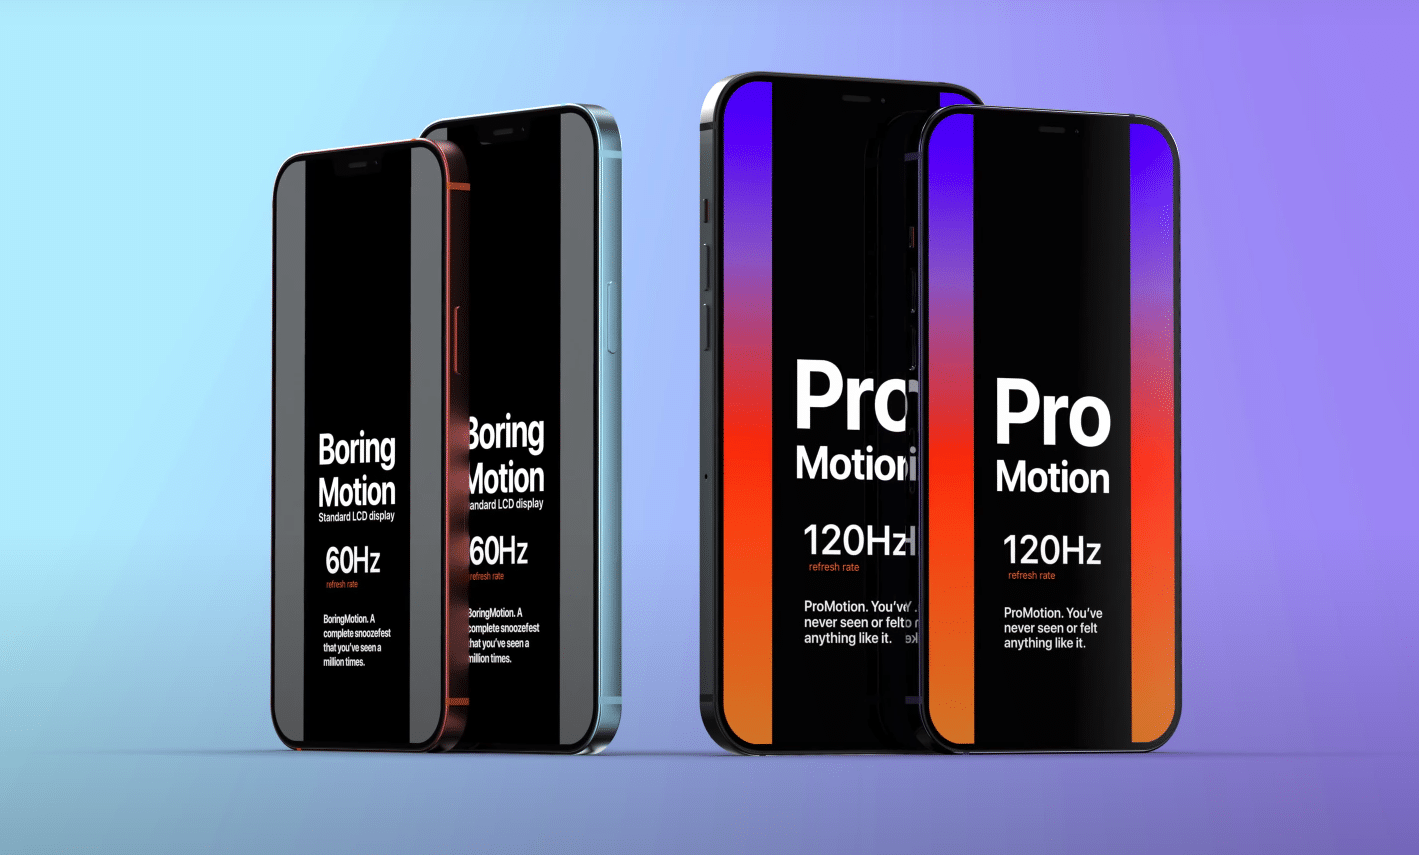 iPhone 13 Pro display a 120Hz